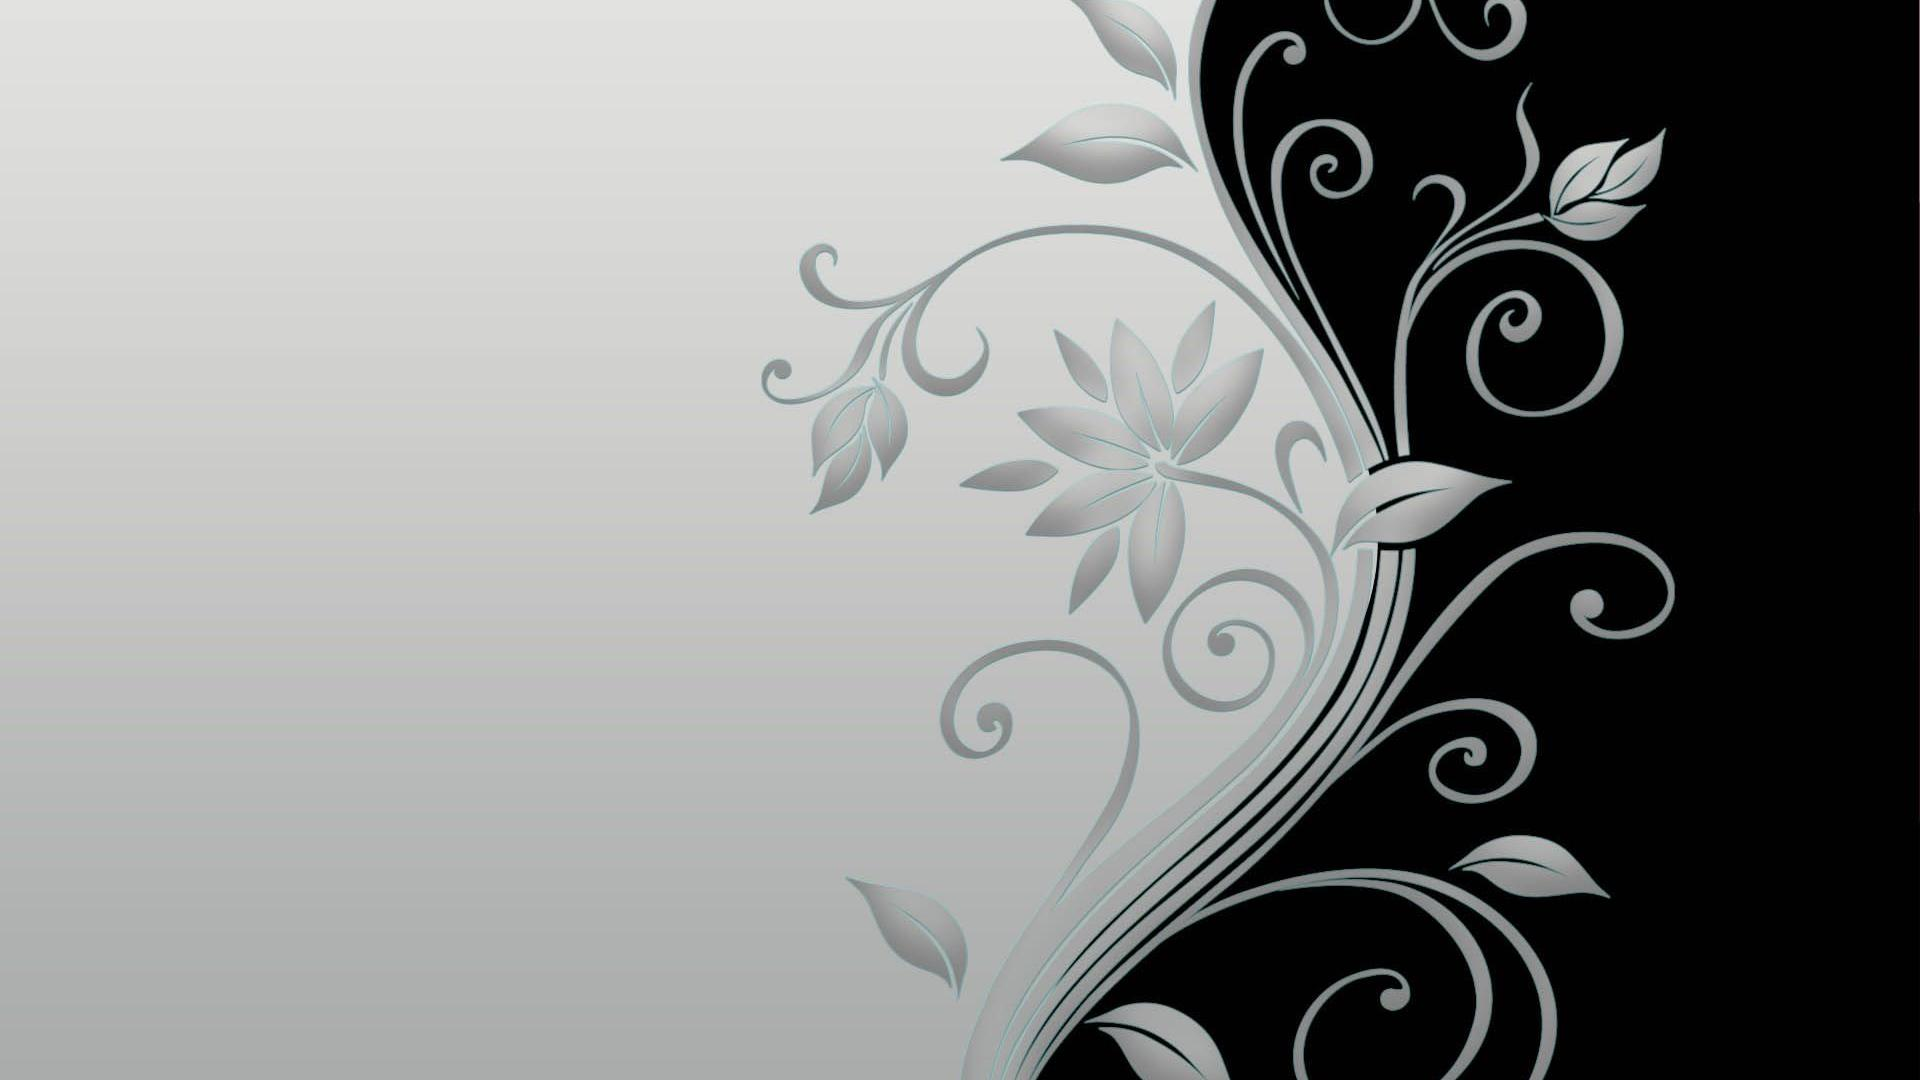 1920x1080 Black And White Floral Wallpaper 15 High Resolution Wallpaper